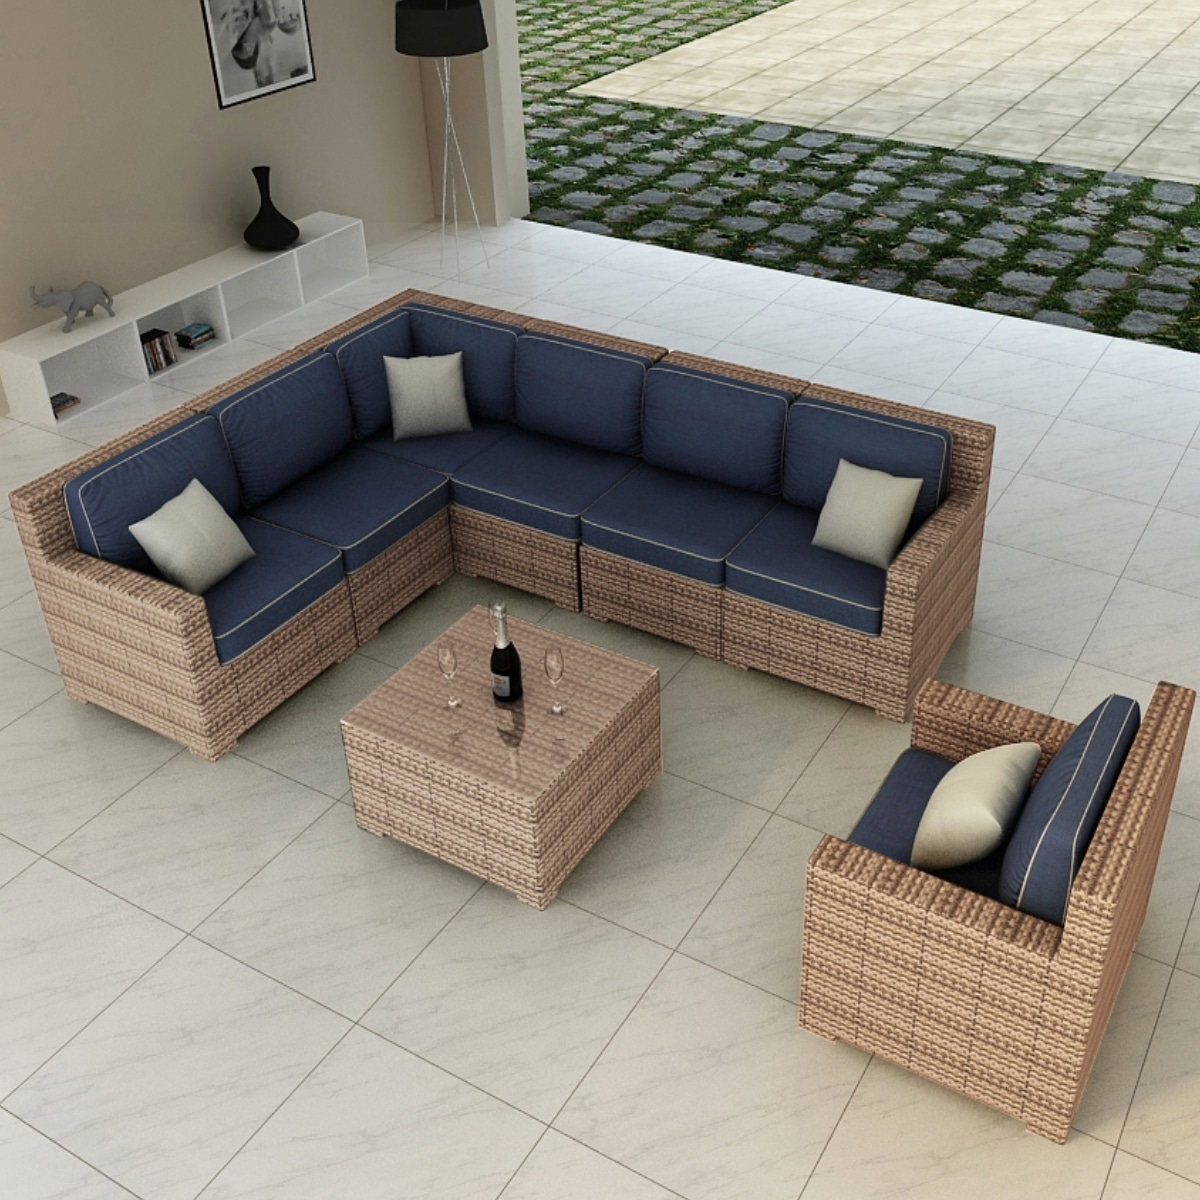 Sectional Outdoor Patio Furniture Set